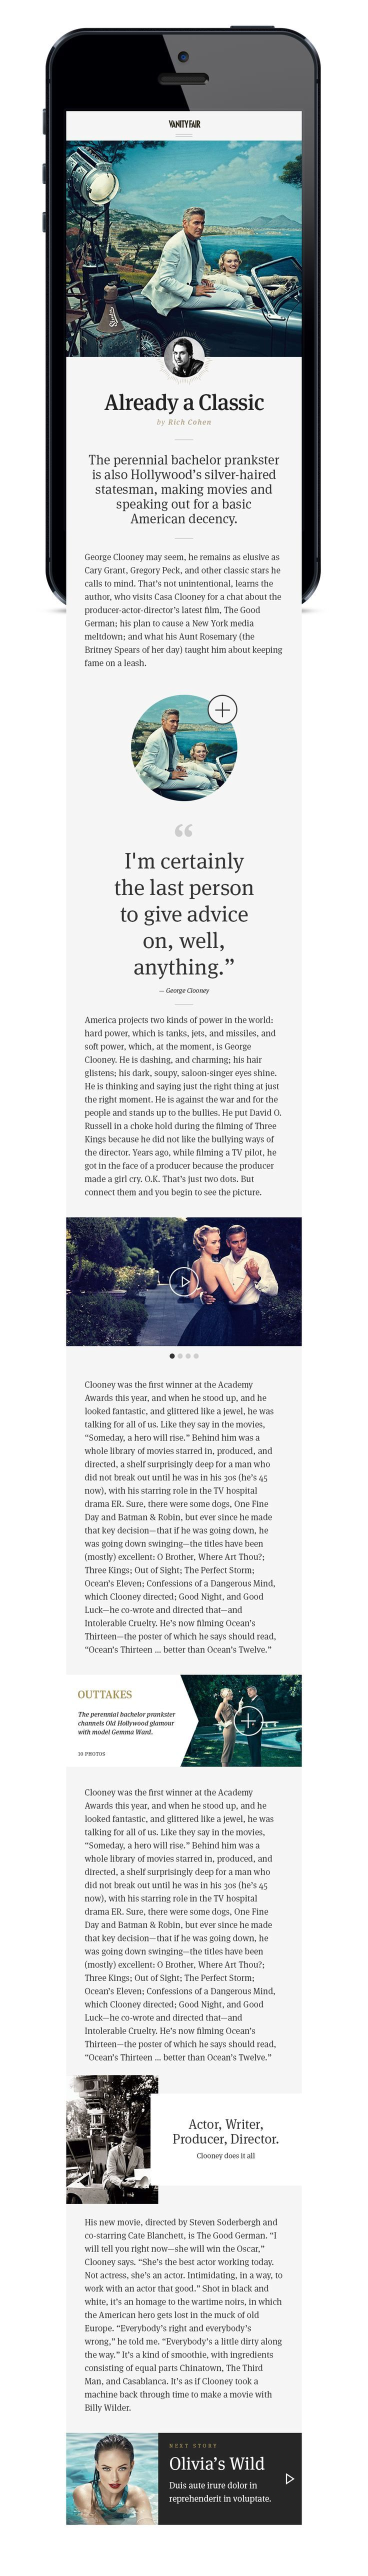 Mobile Design - Article Pages | Abduzeedo Design Inspiration